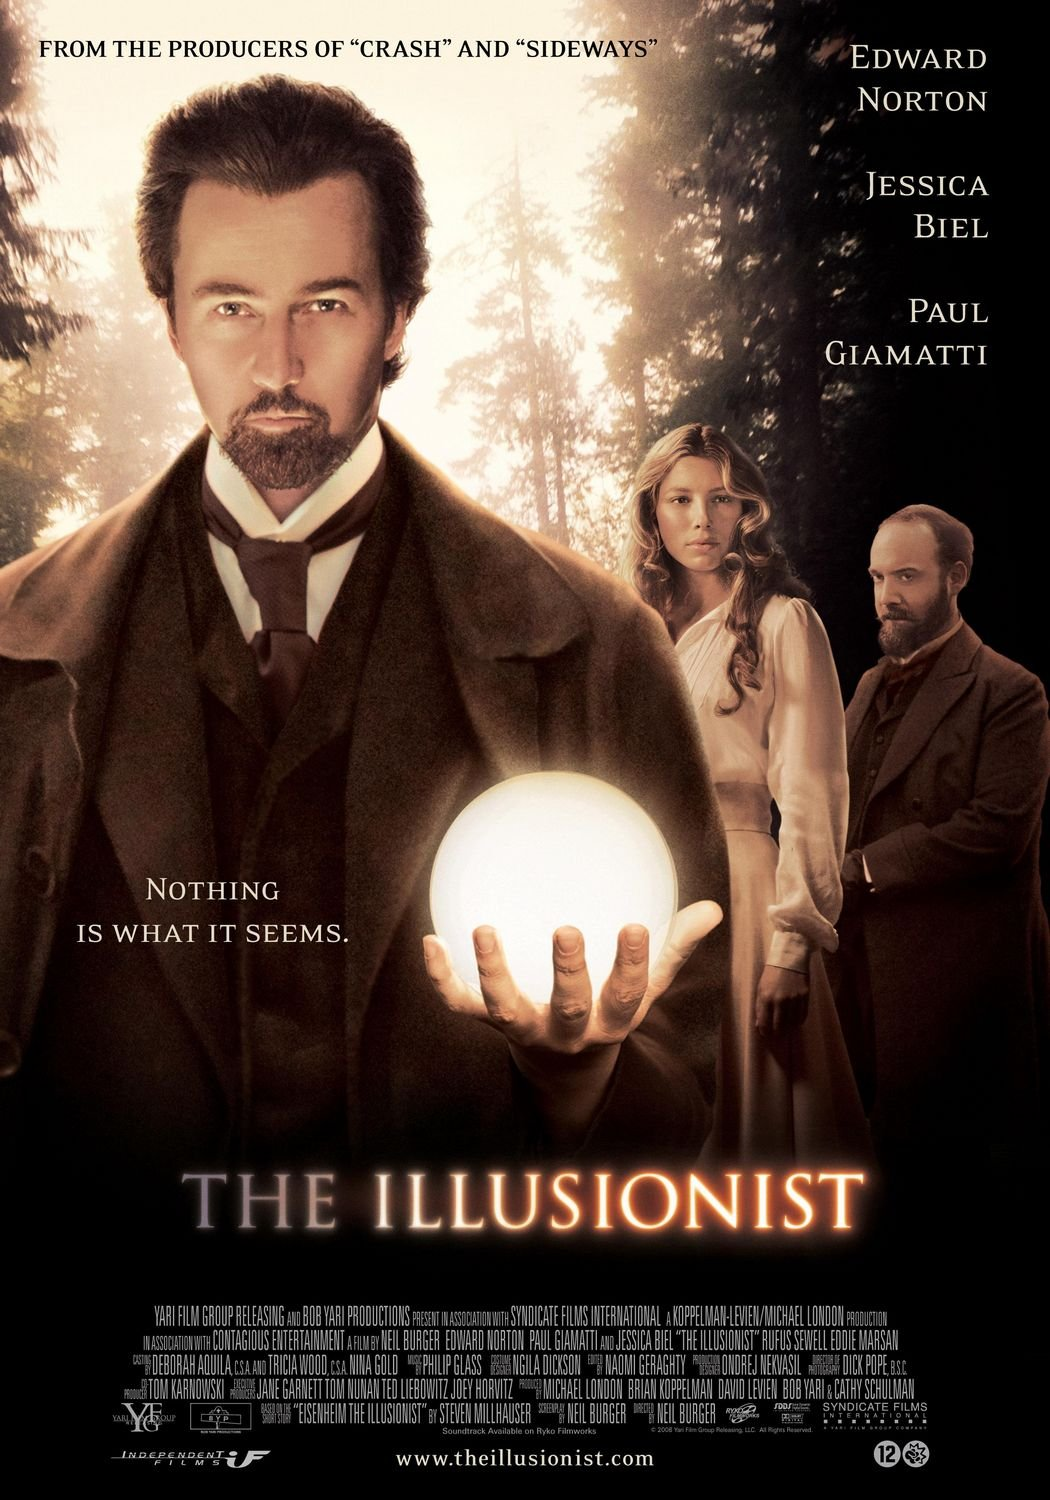 The Illusionist 2006 Imdb